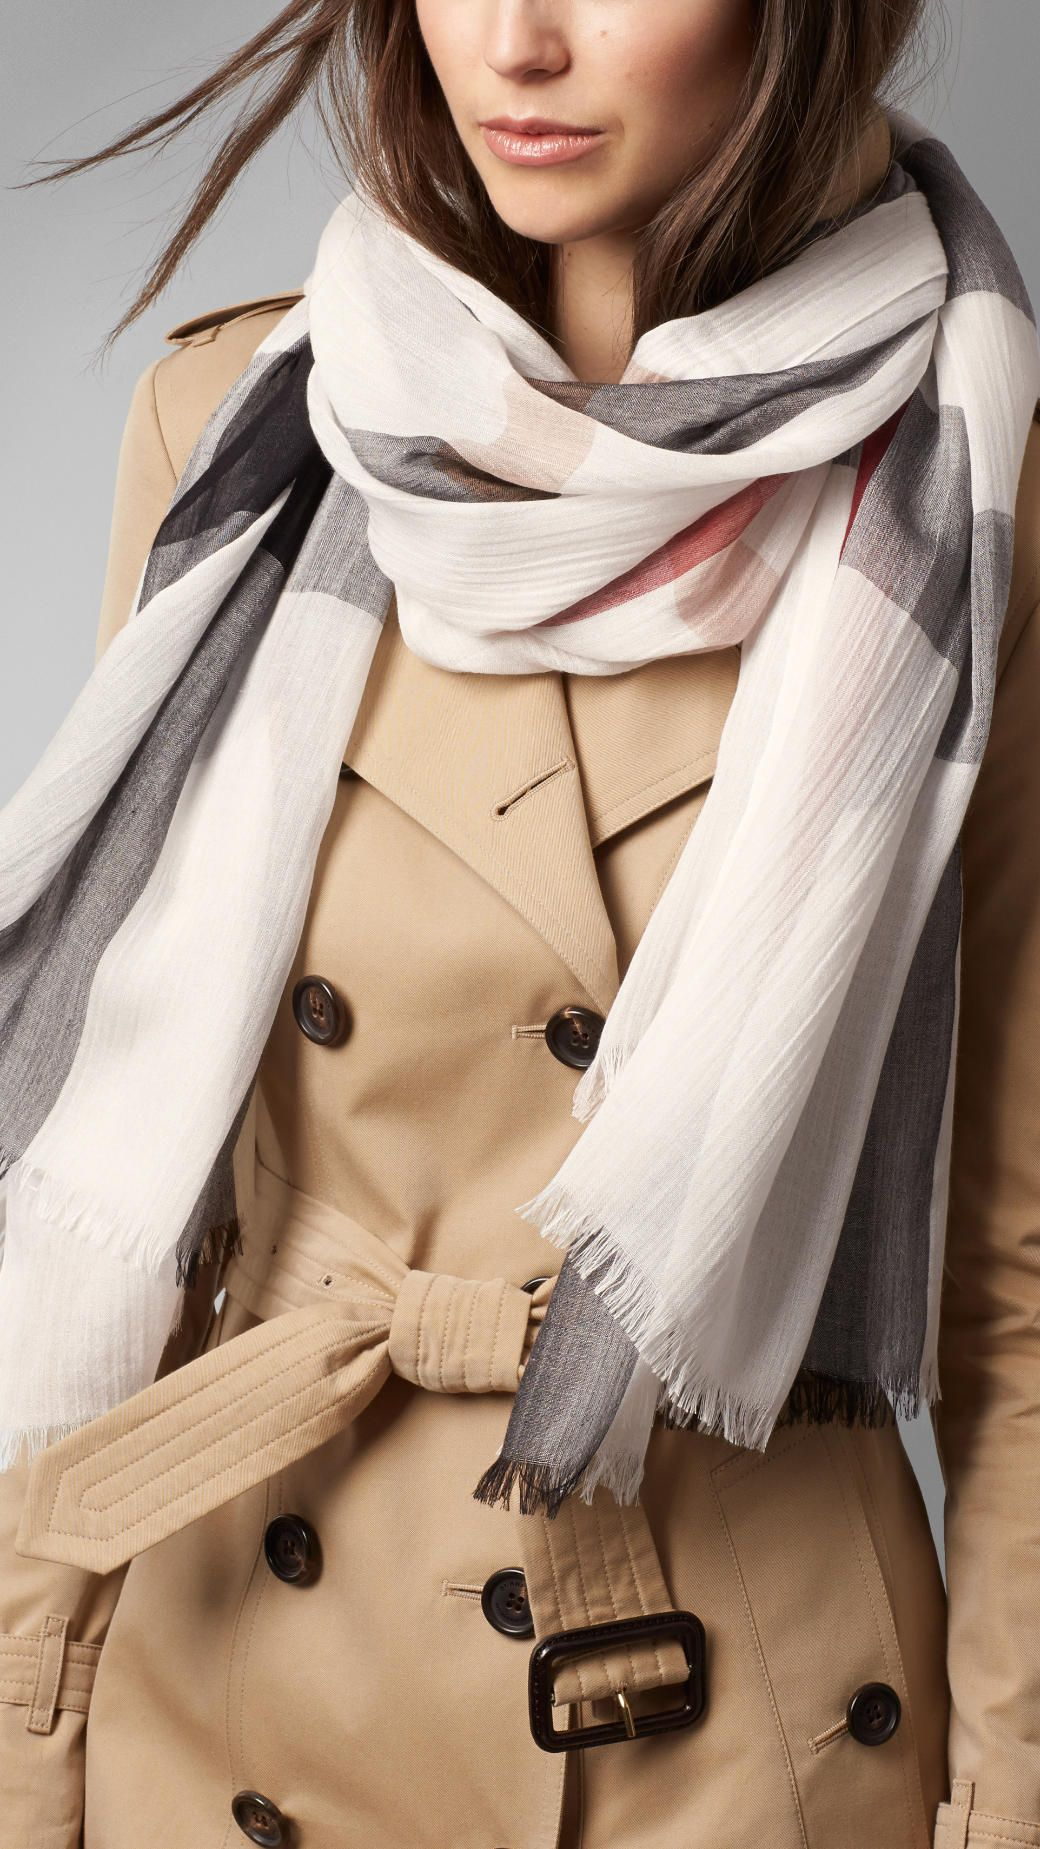 Check Modal Cashmere and Silk Scarf in Ivory. Burberry TrenchBurberry ...